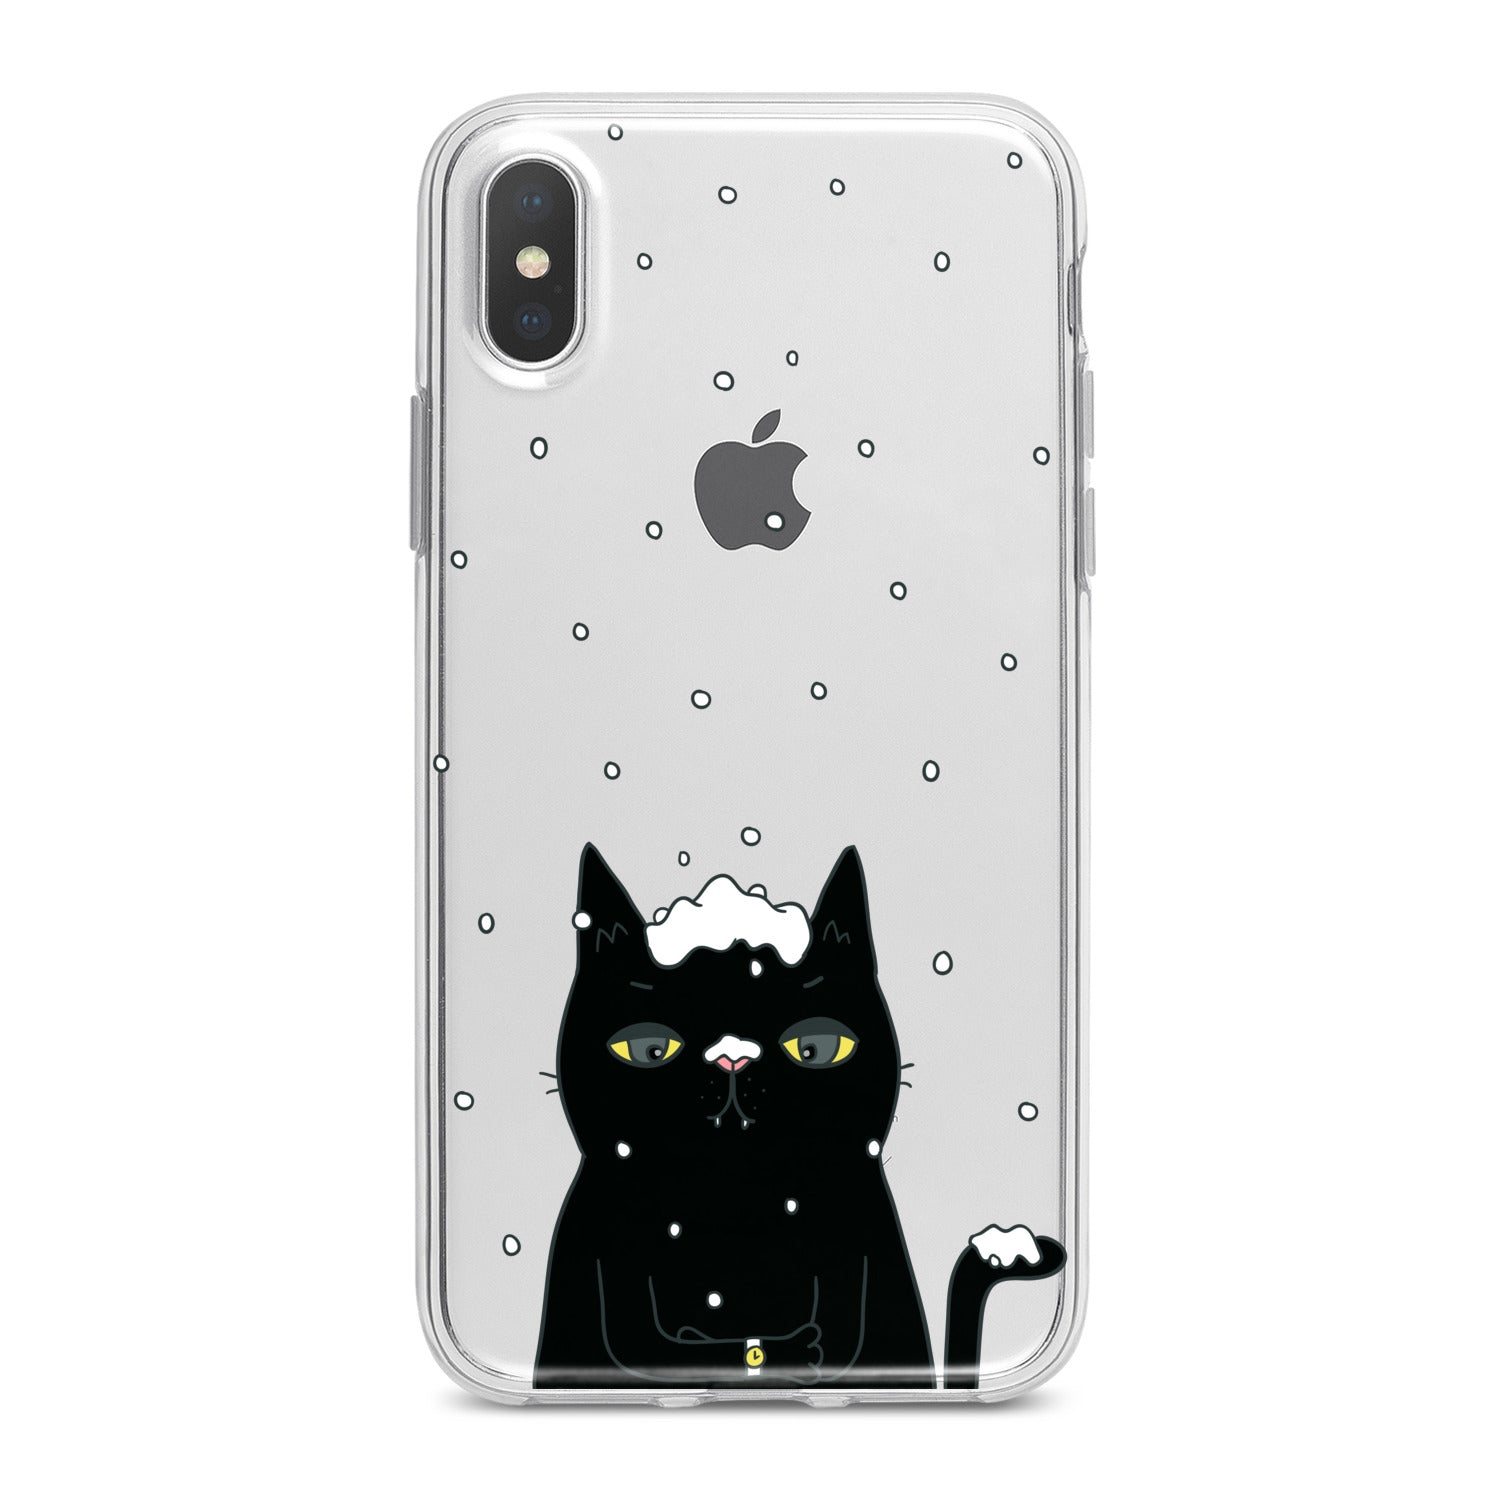 Lex Altern Black Snowy Cat Phone Case for your iPhone & Android phone.